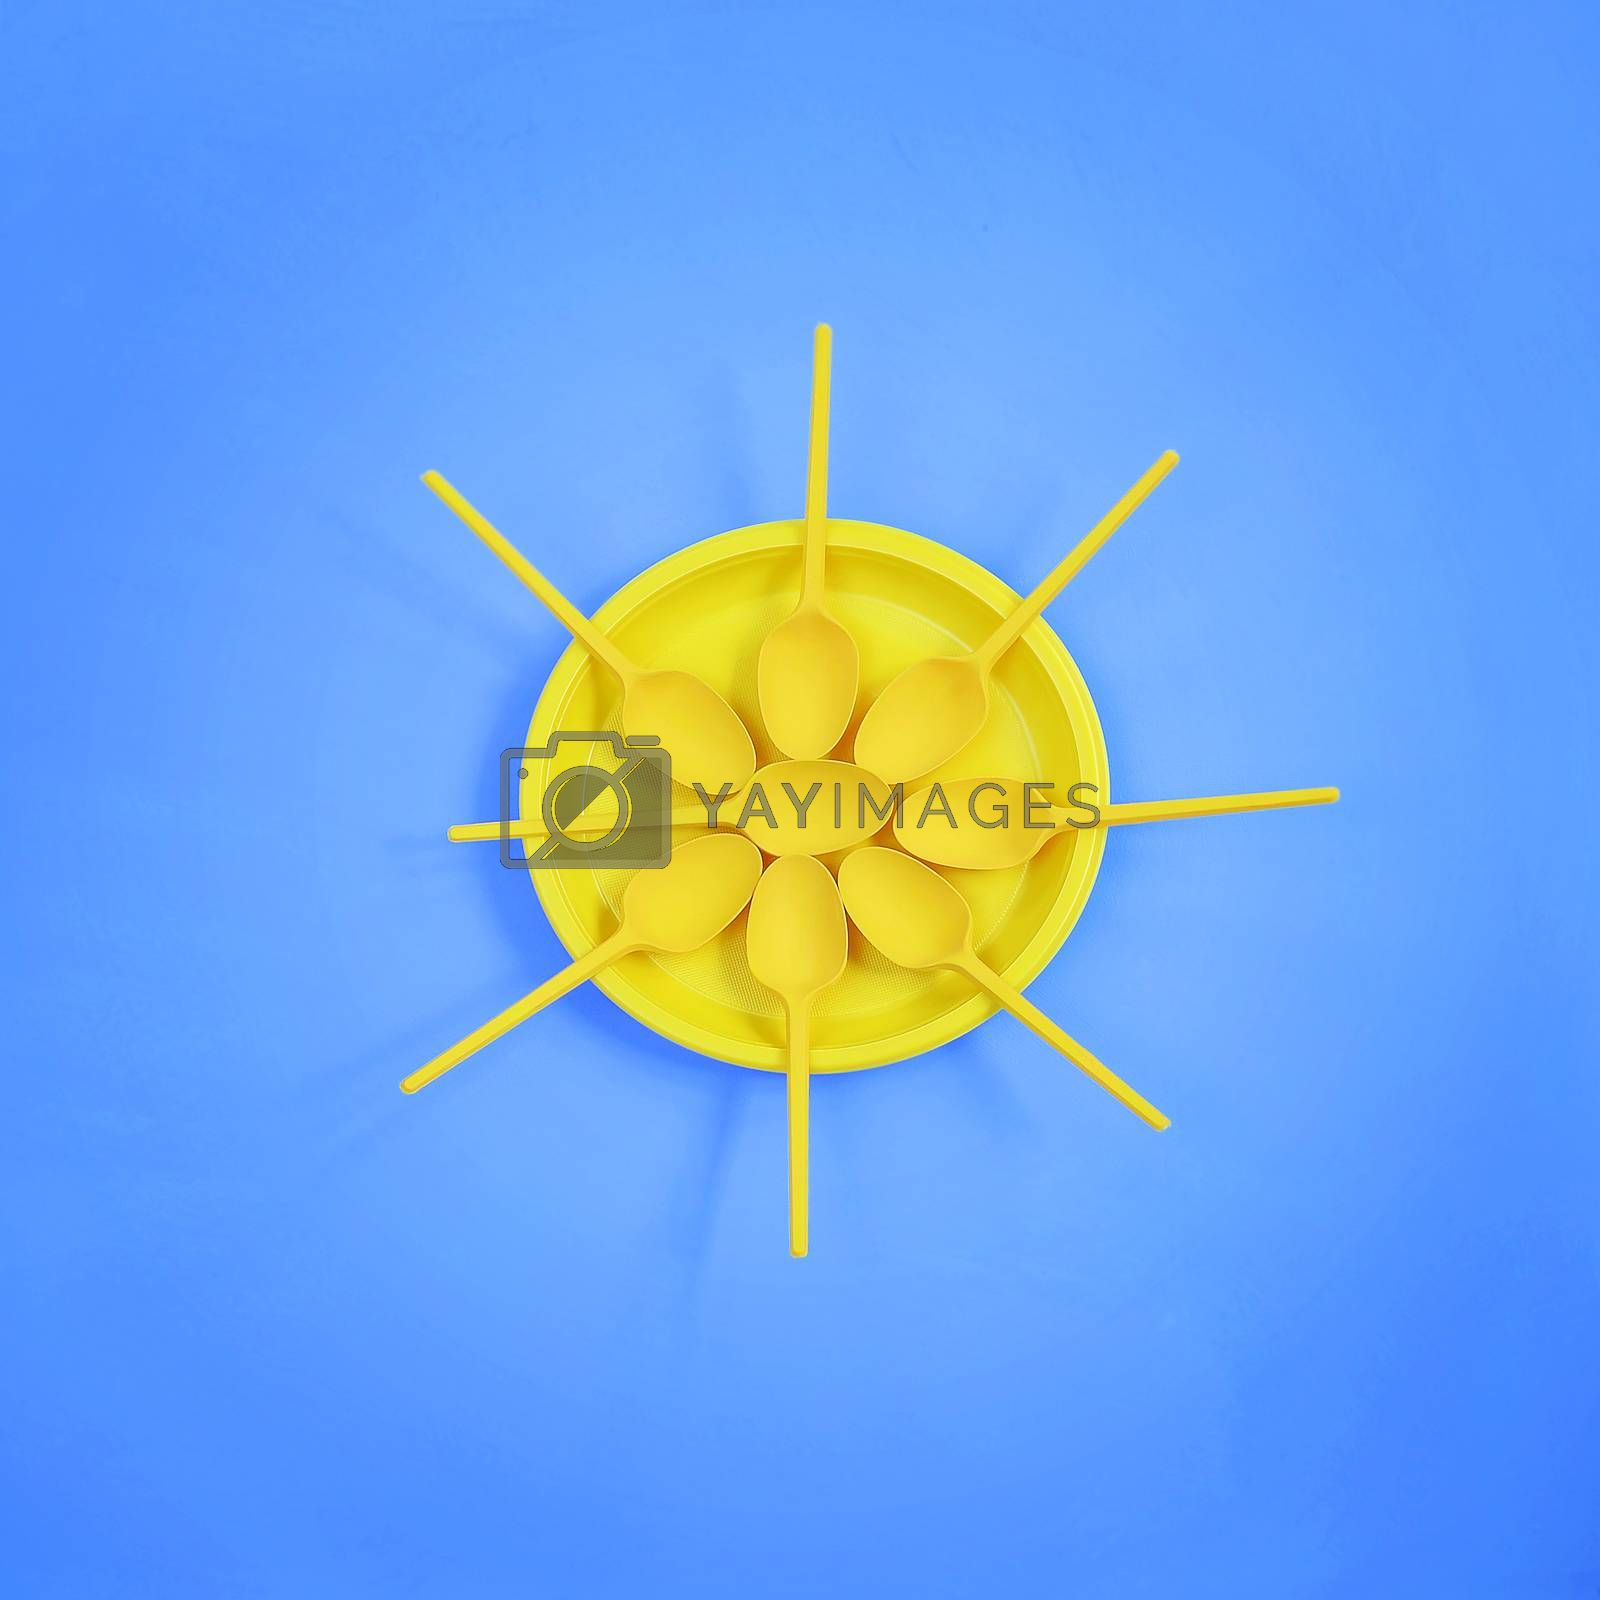 A yellow plastic plate and spoons lay around it on a bright blue background. The concept of a holiday, picnic